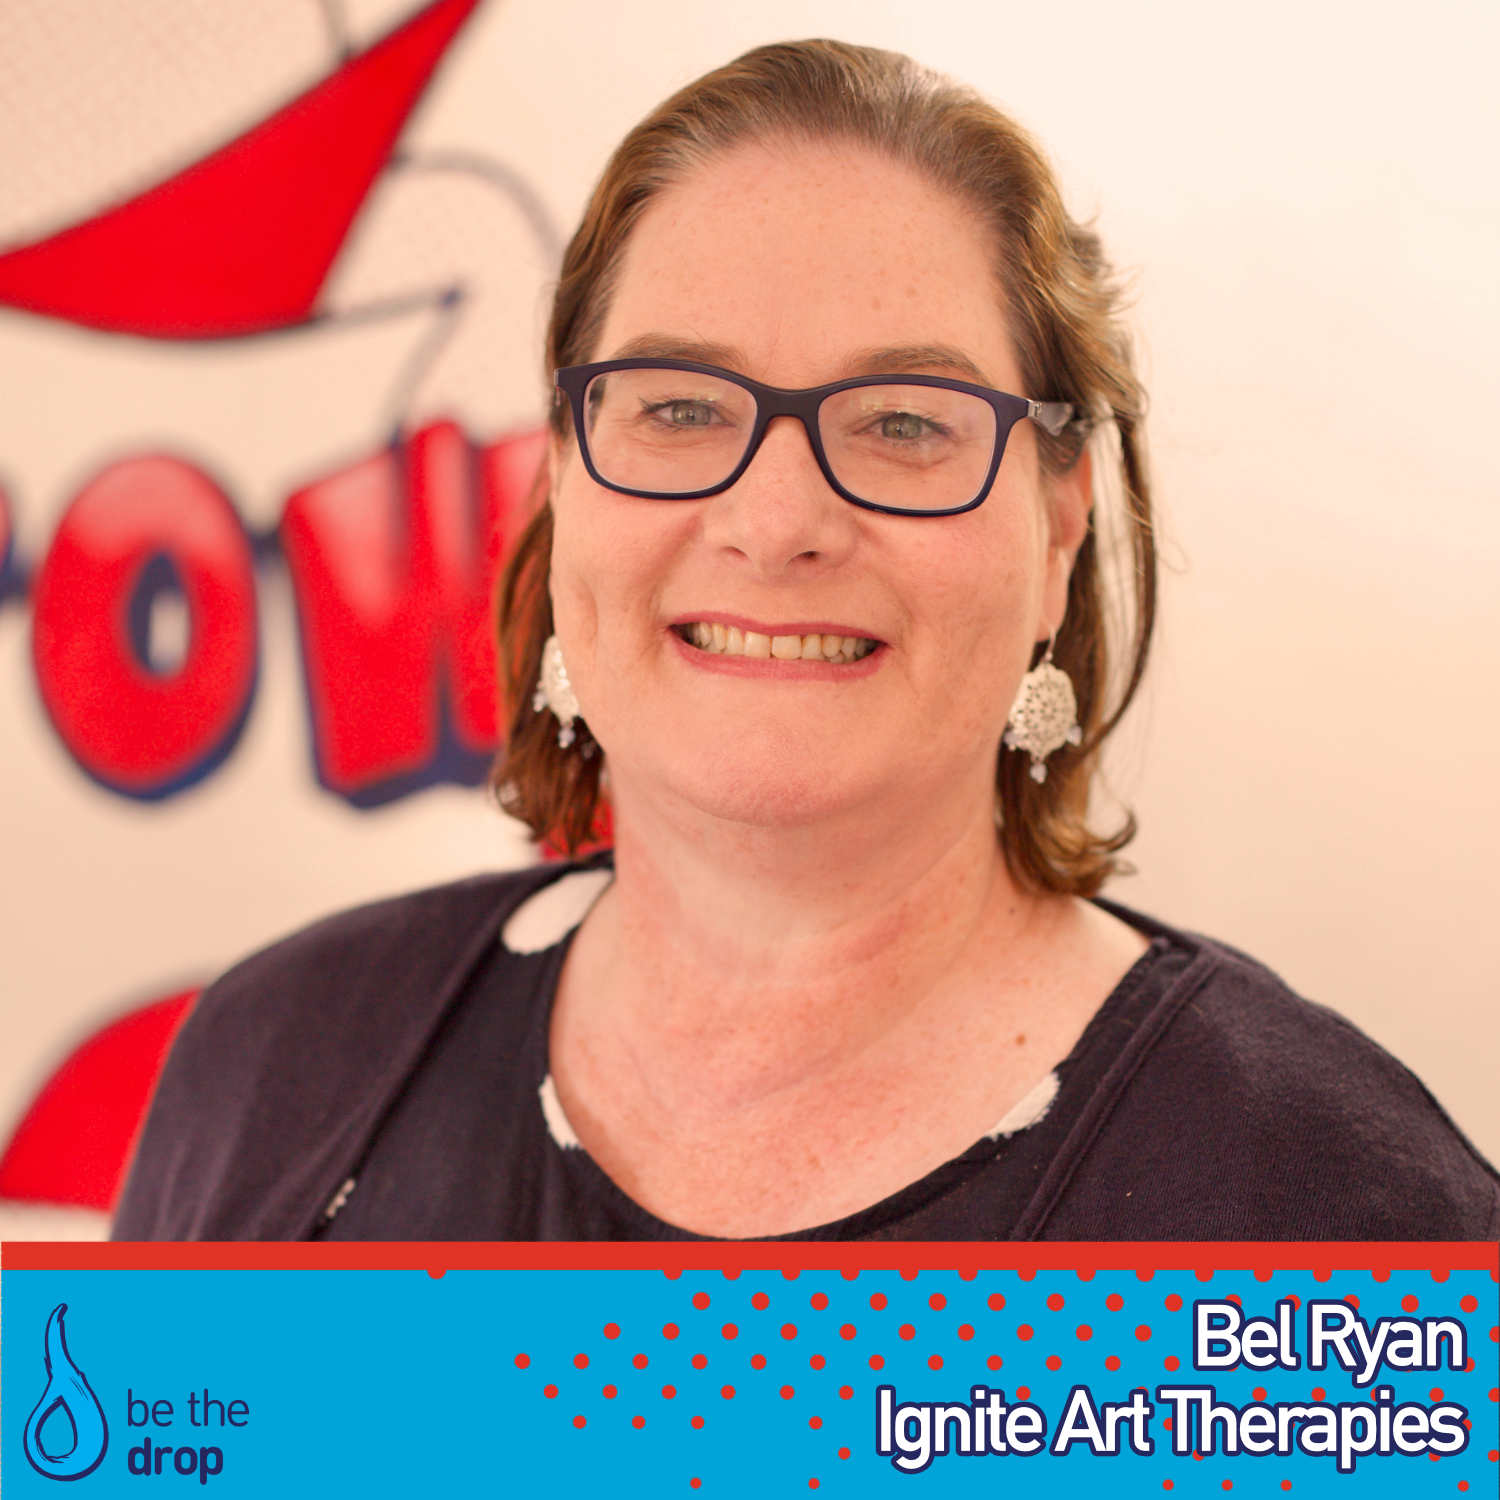 Self-Development Through Art Therapy With Bel Ryan [Podcast]